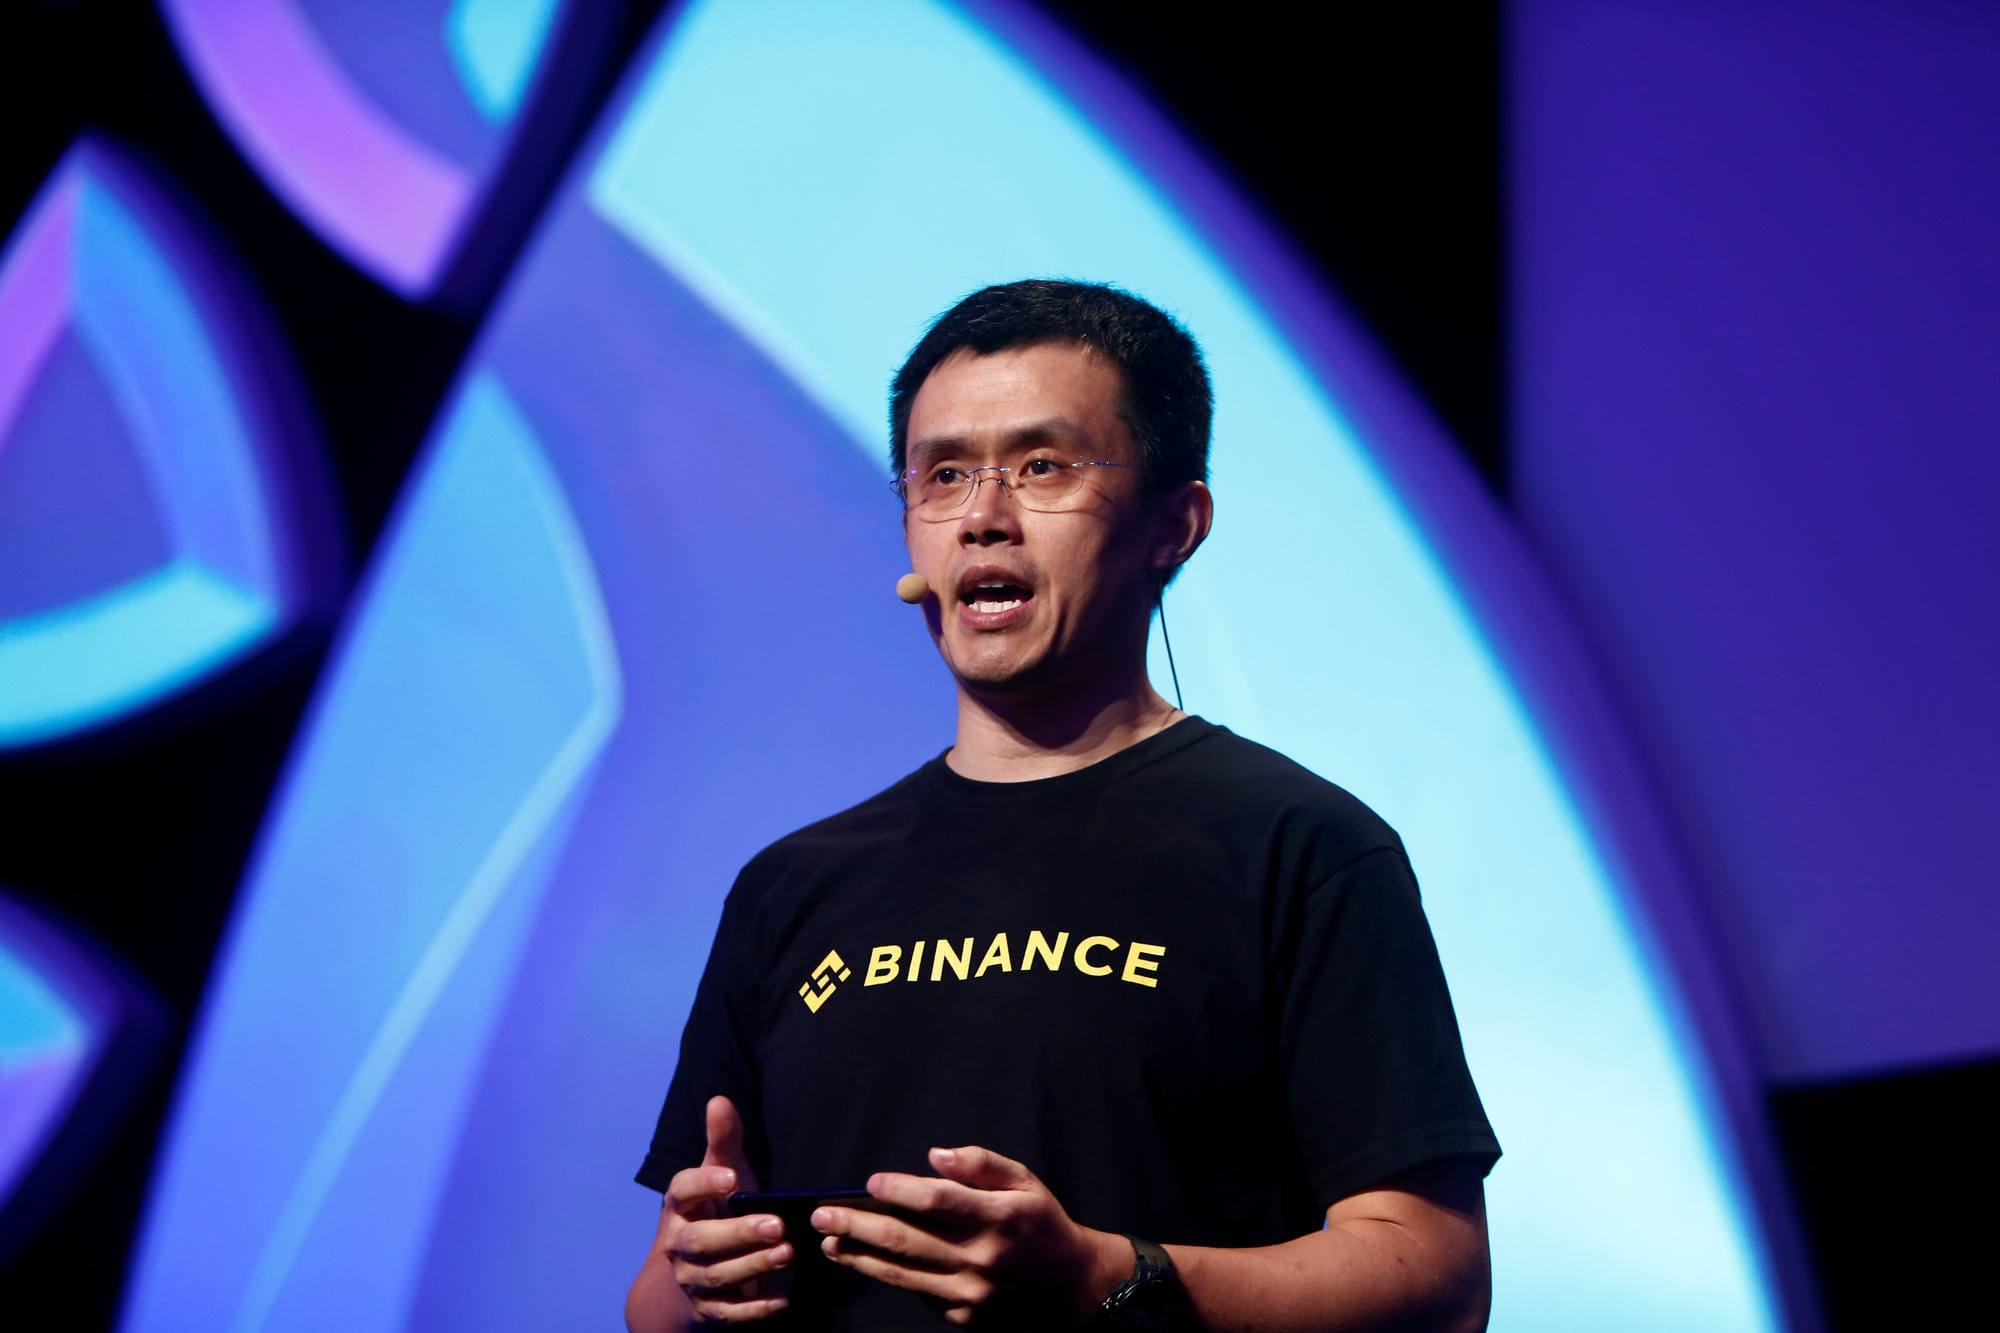 One-Fourth of last year's profits invested Binance says CZ